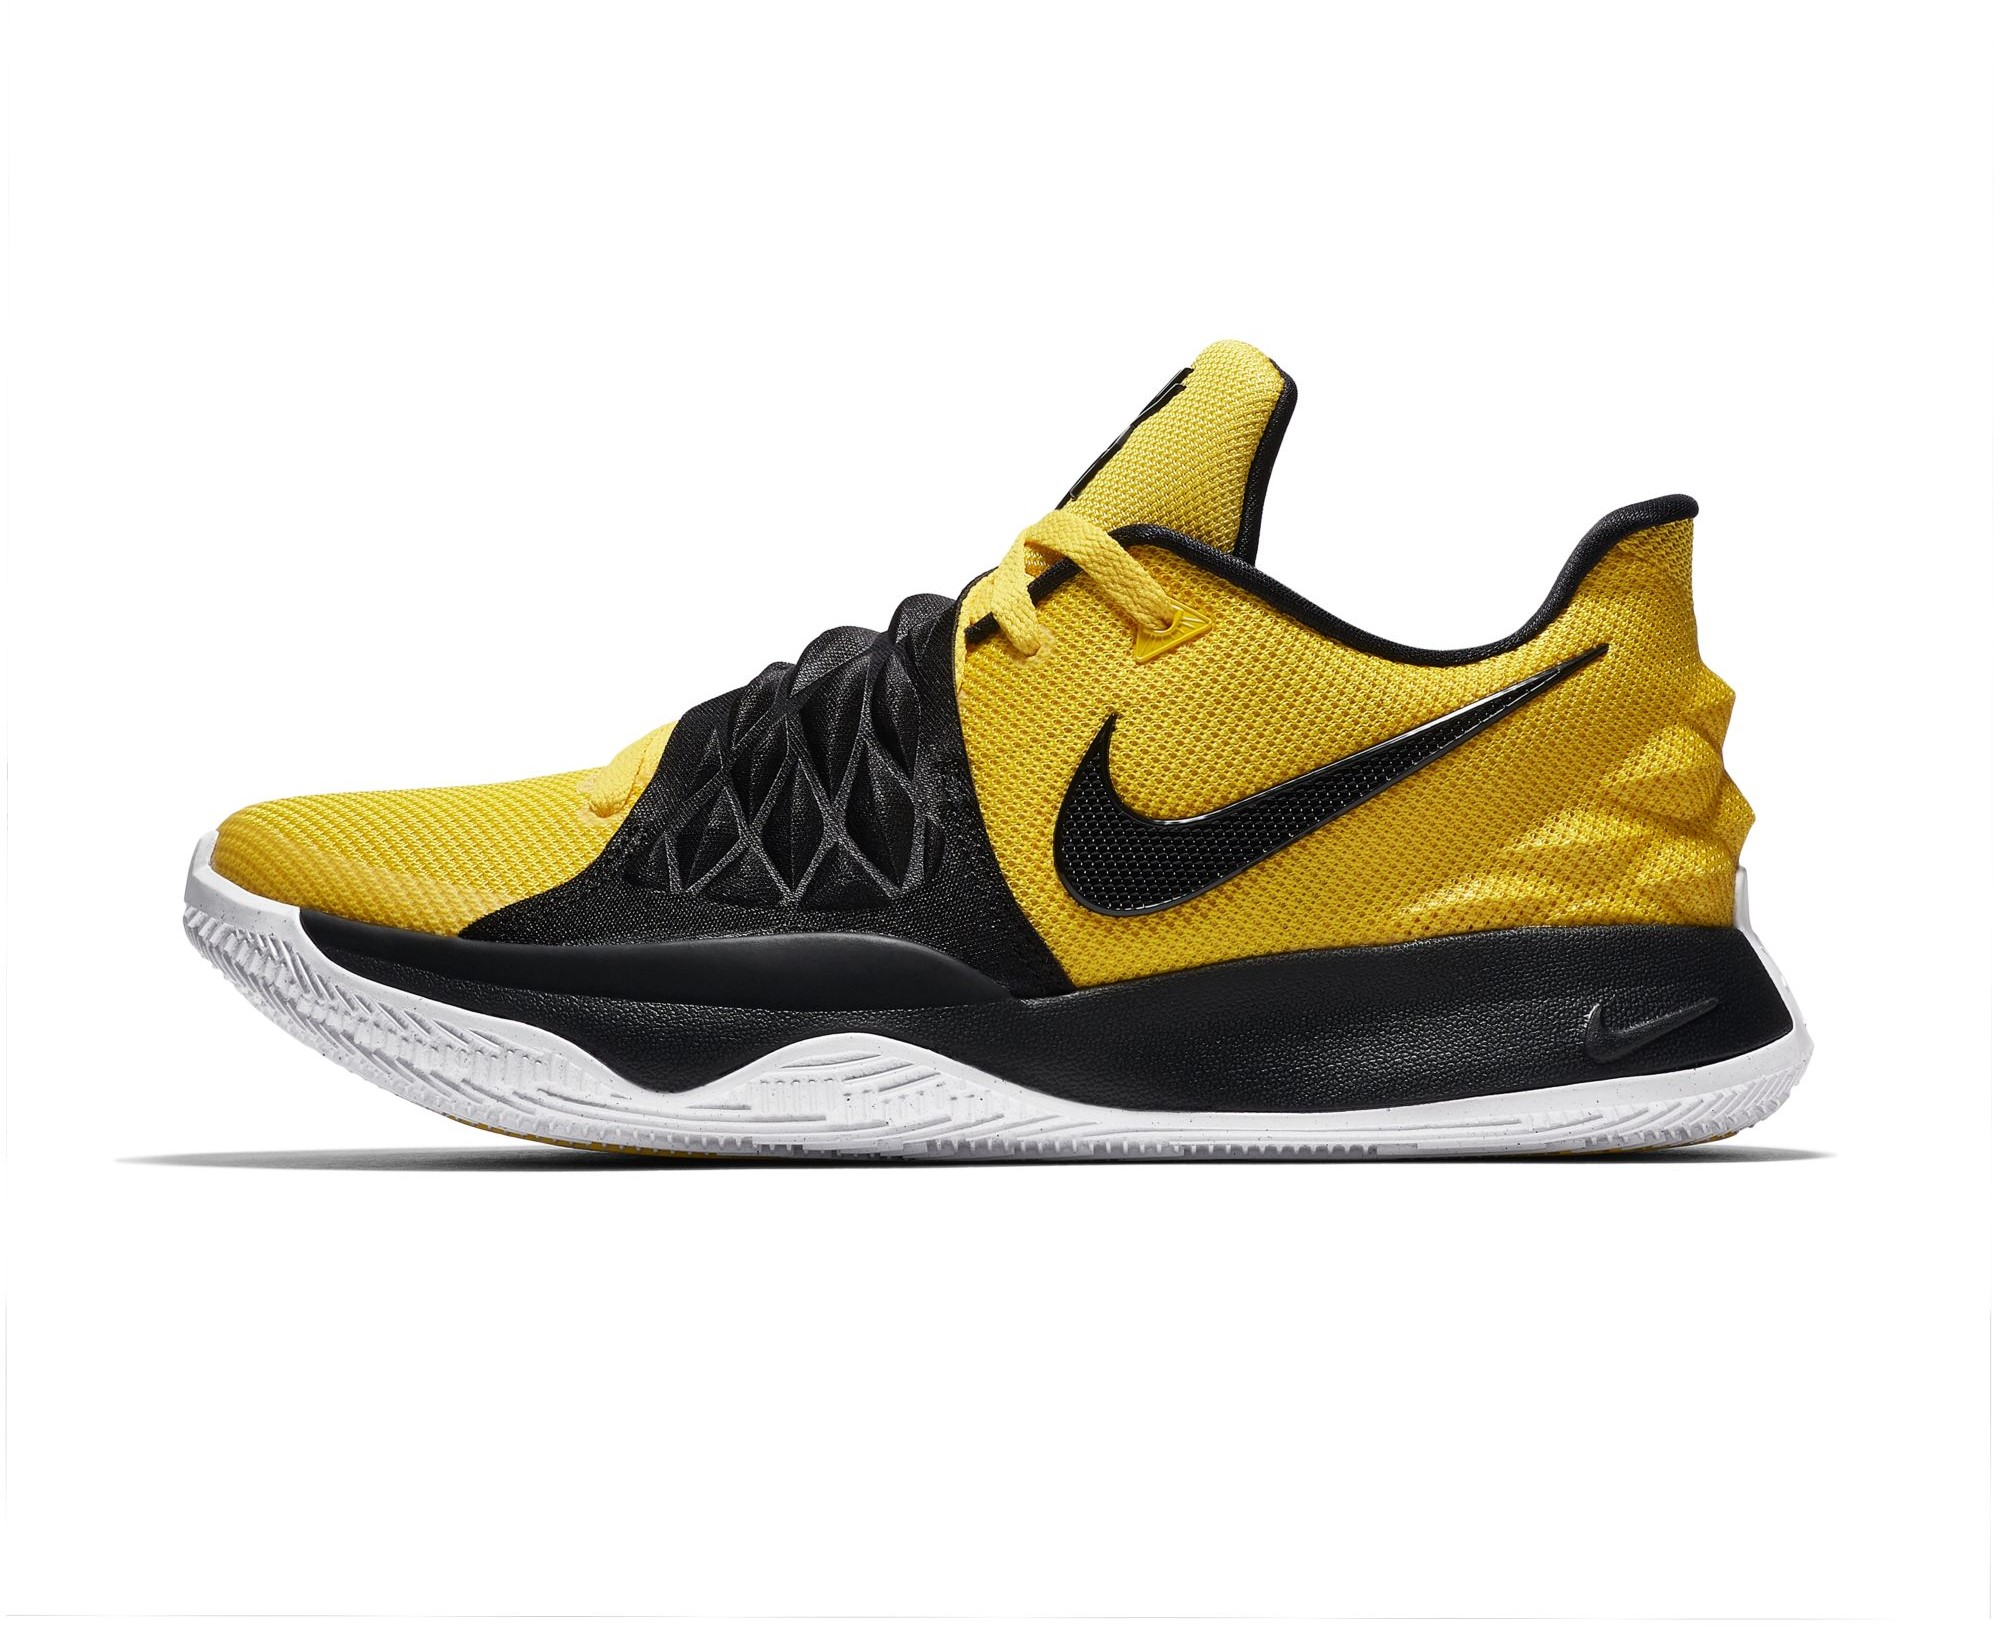 Expect the Nike Kyrie Low 'Amarillo' to